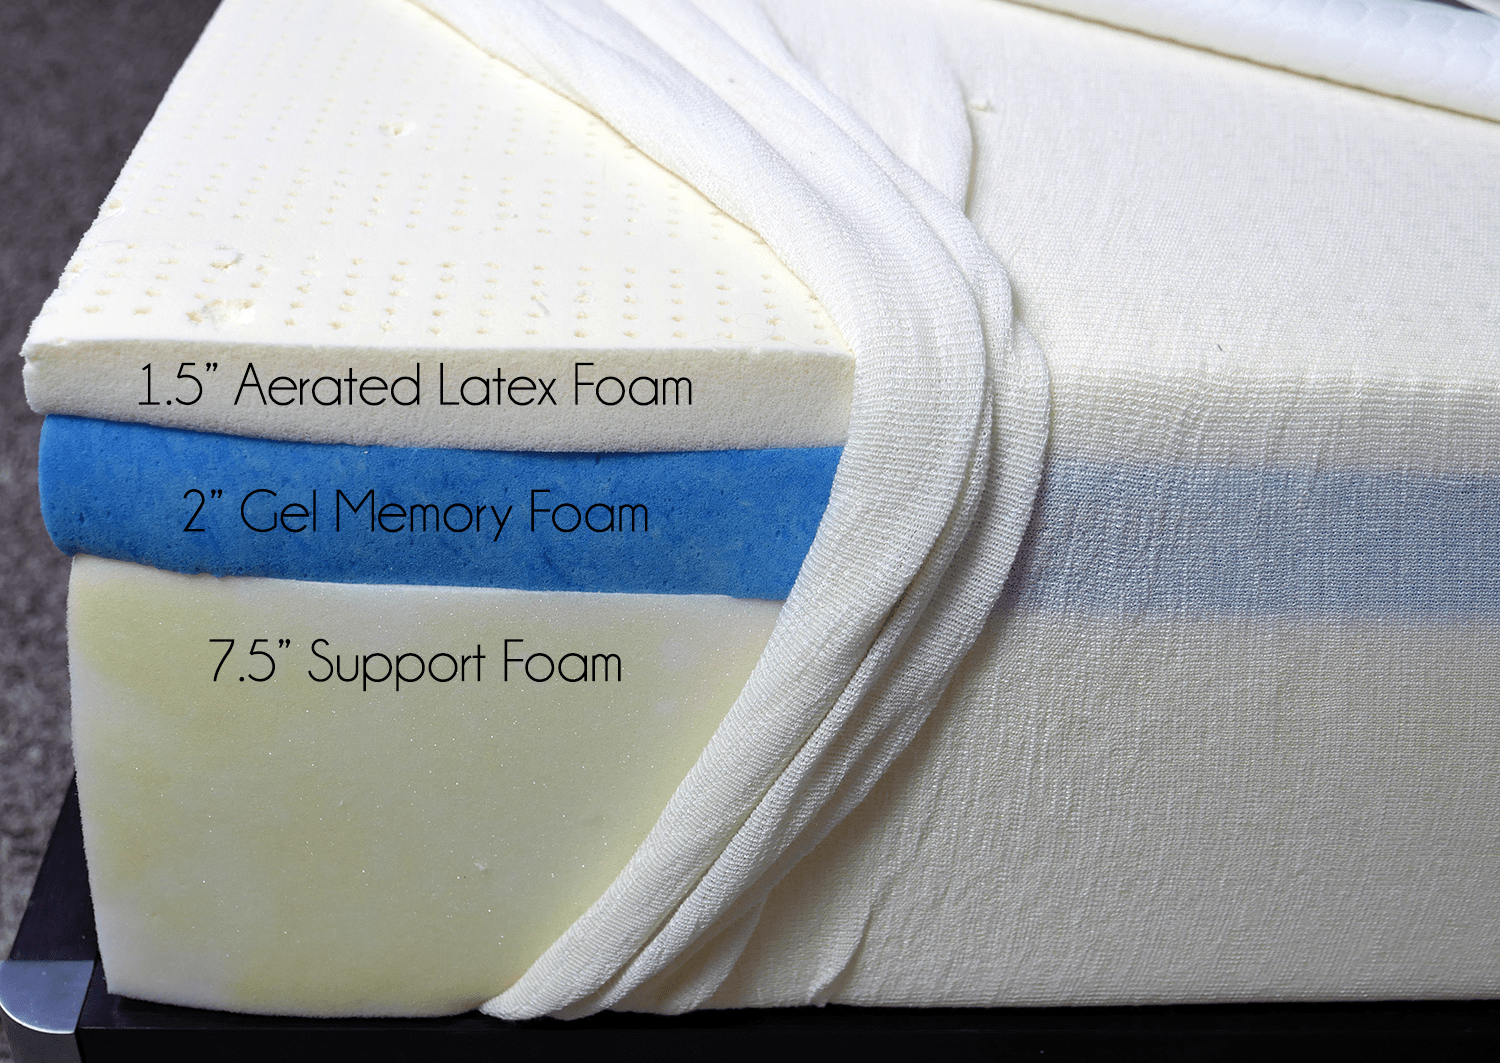 "GhostBed mattress layers (top to bottom) - 1.5"" aerated latex foam, 2"" gel memory foam, 7.5"" support foam"